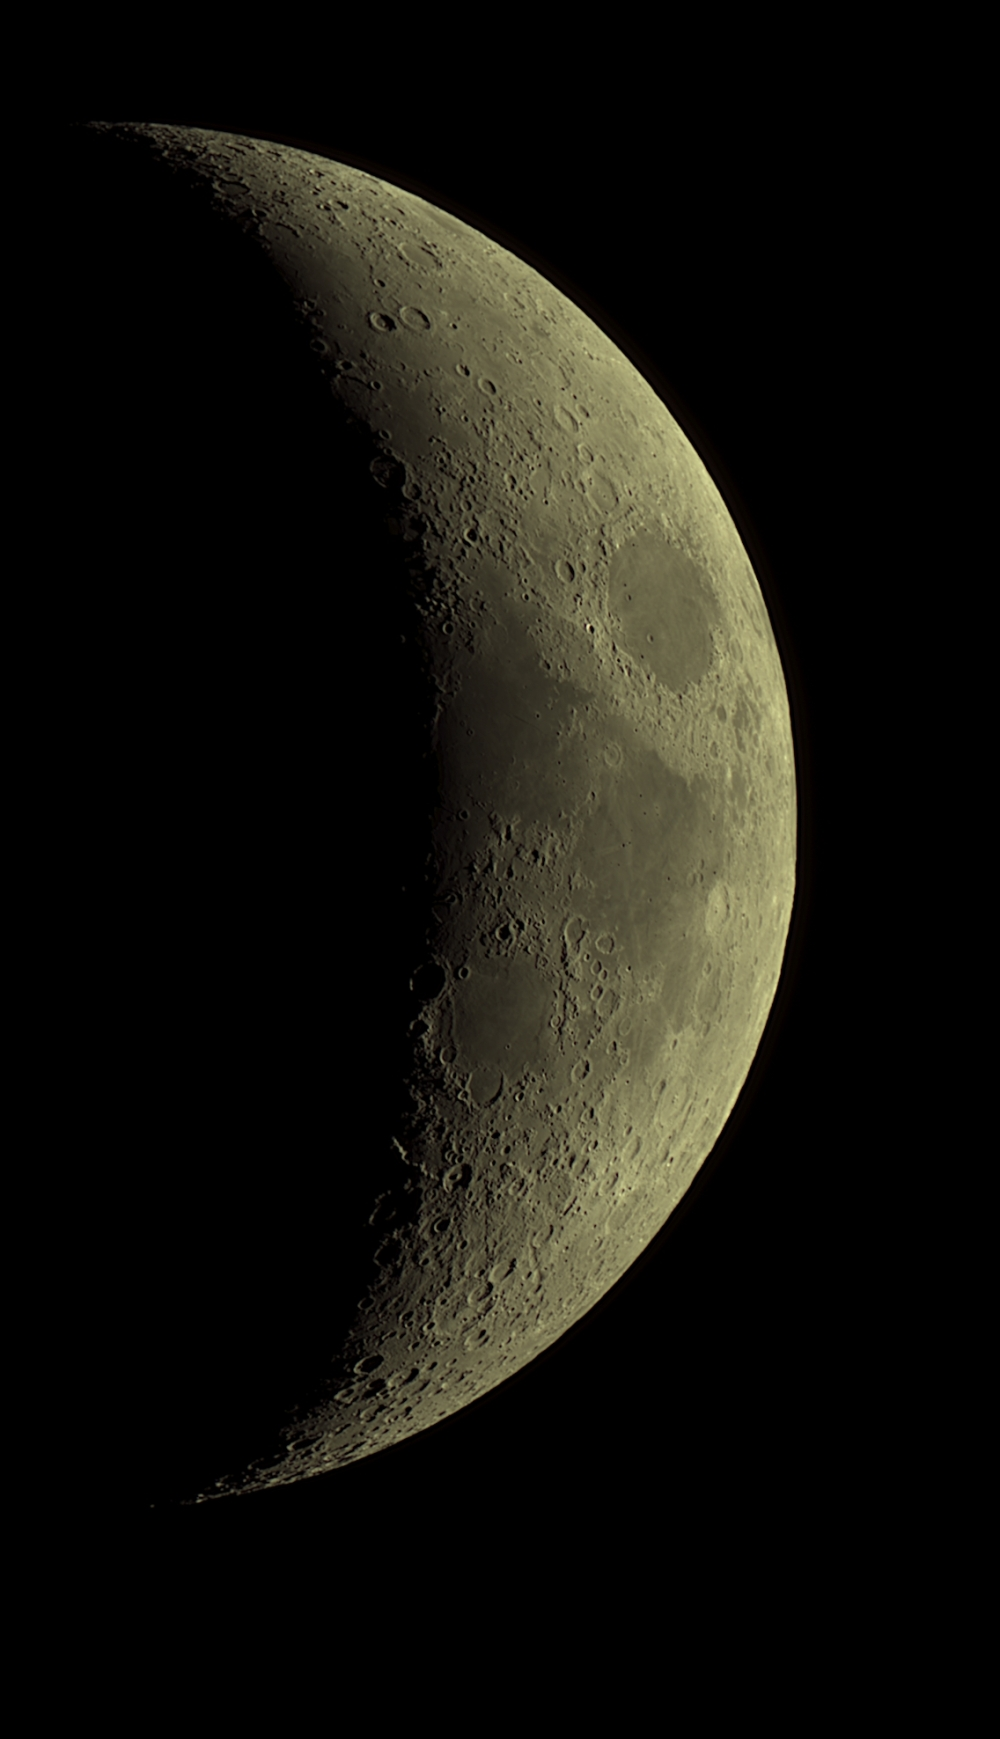 Moon_20180420_AutoStakkert2_wavelet_19_32_17_g4_ap1